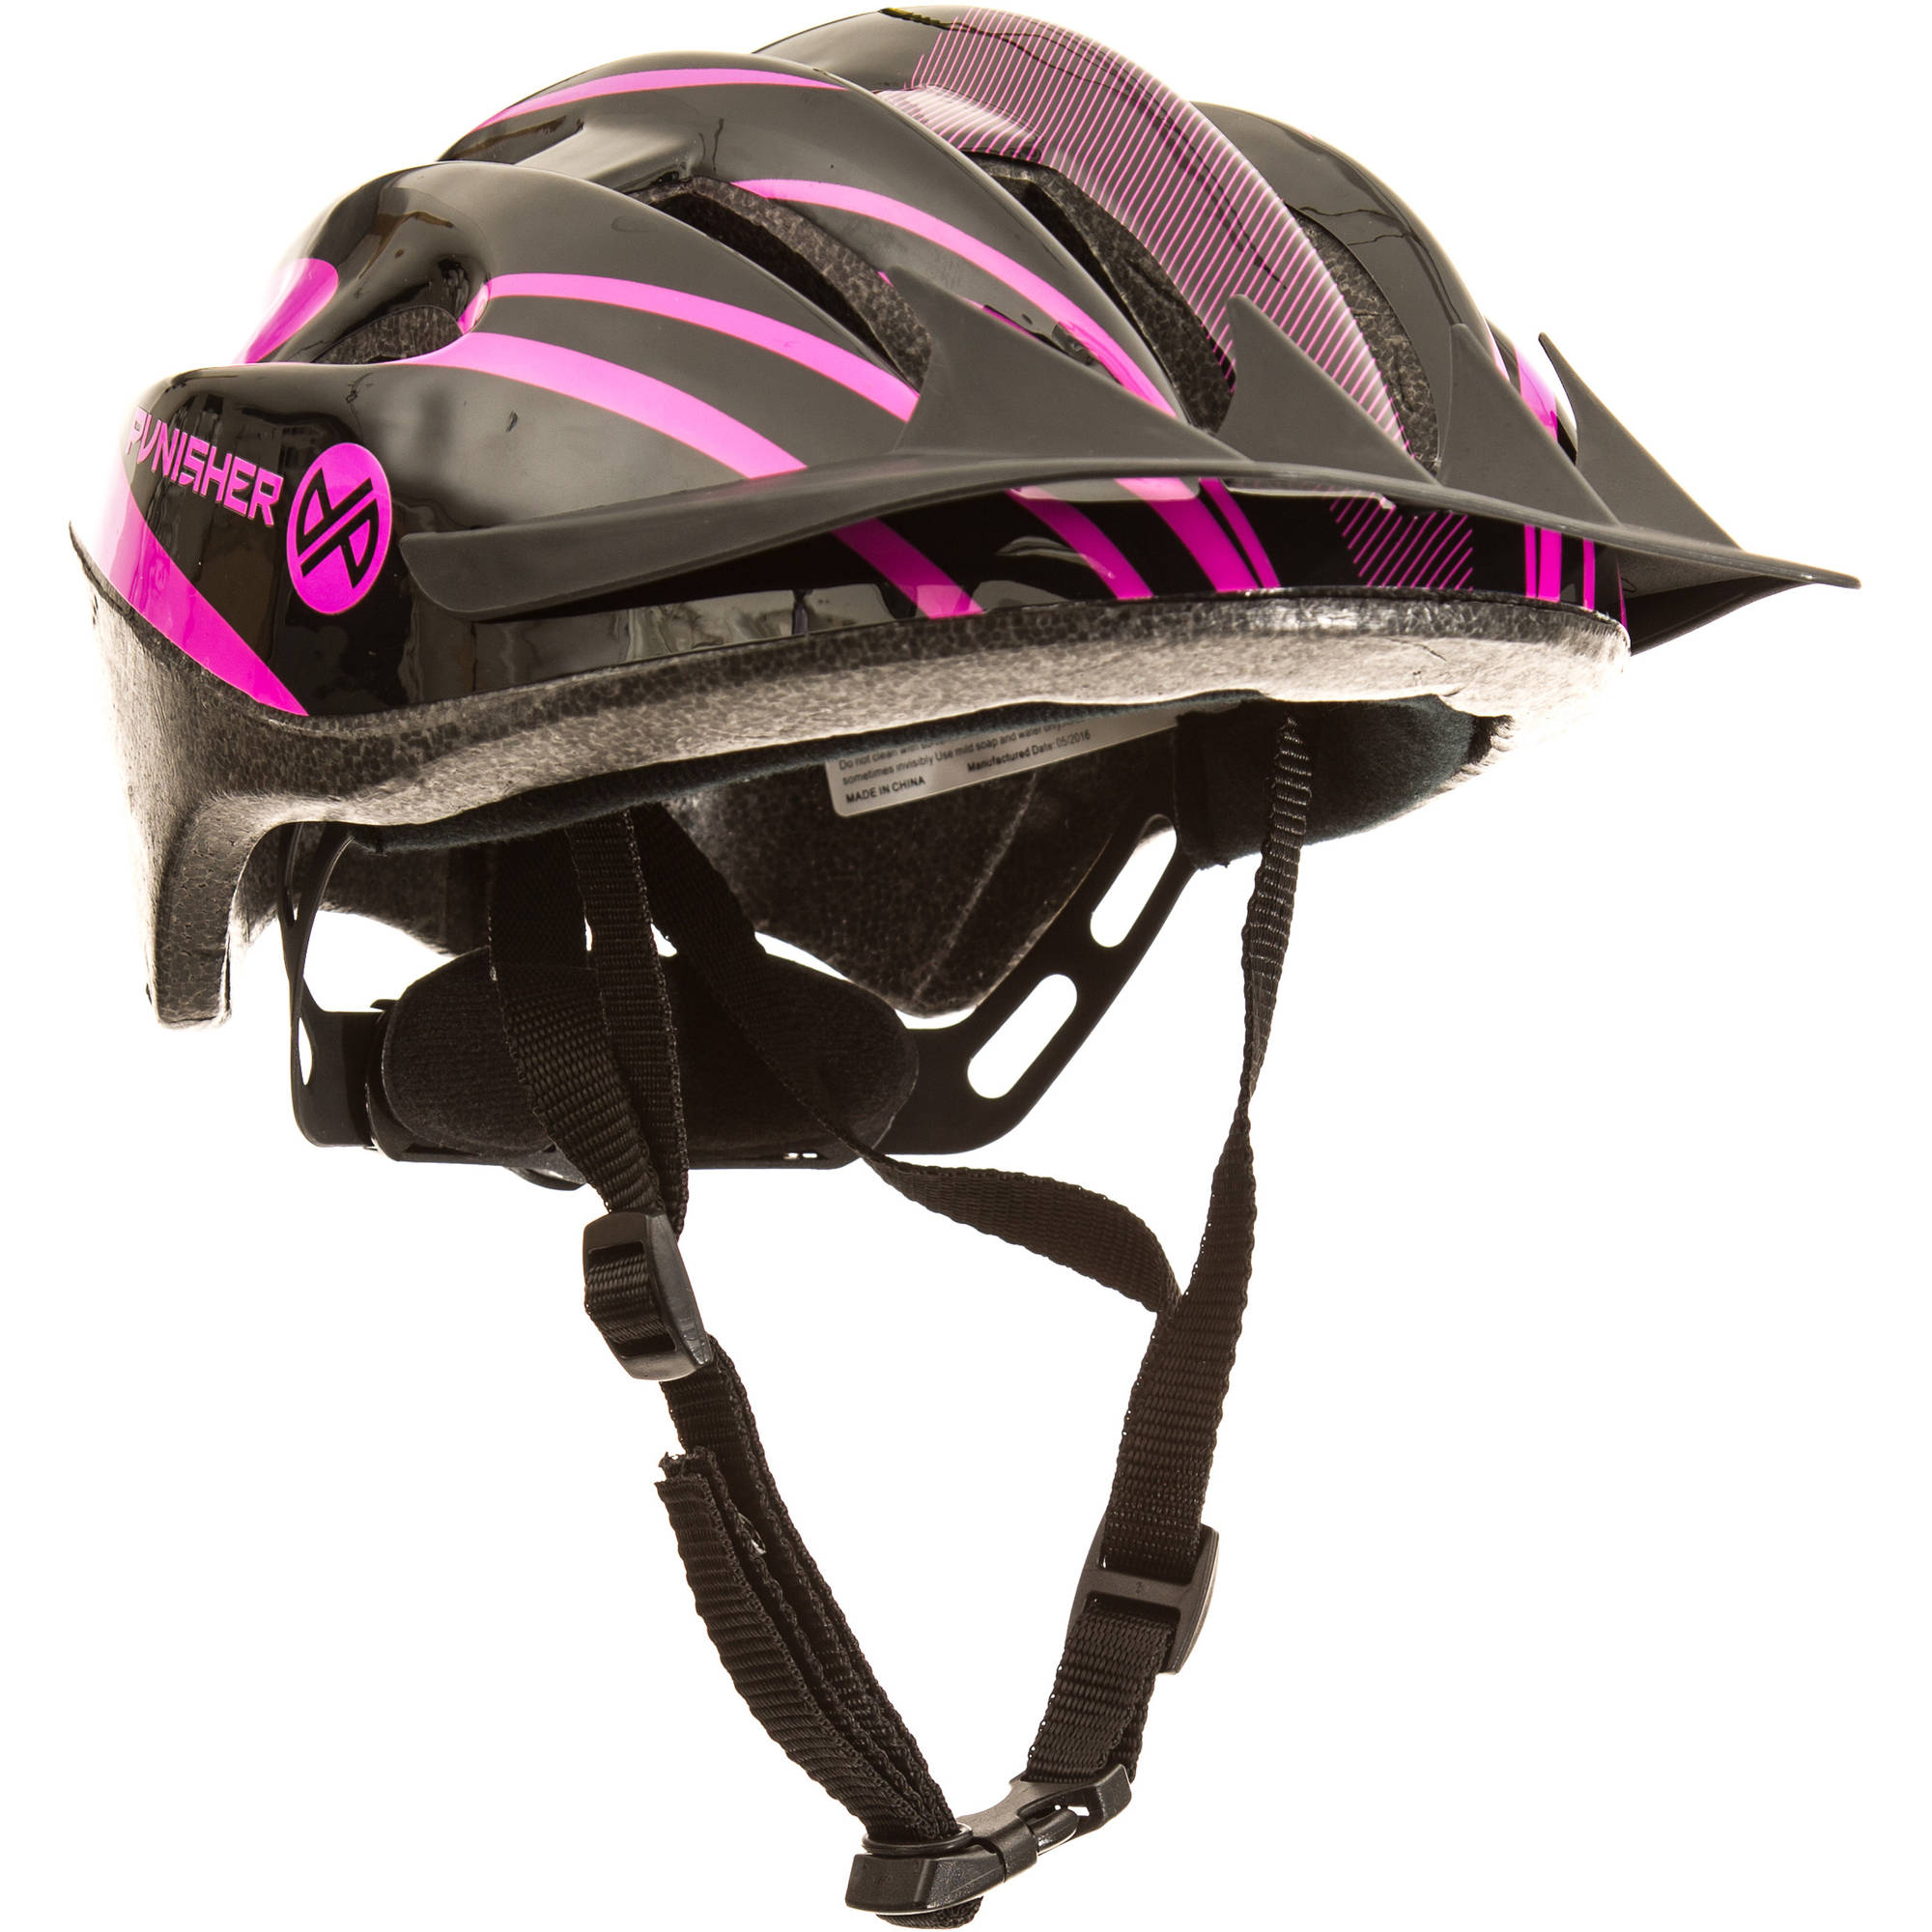 Punisher Women's 18-Vent Cycling Helmet with ABS Shell and Detachable Visor, Black and Pink